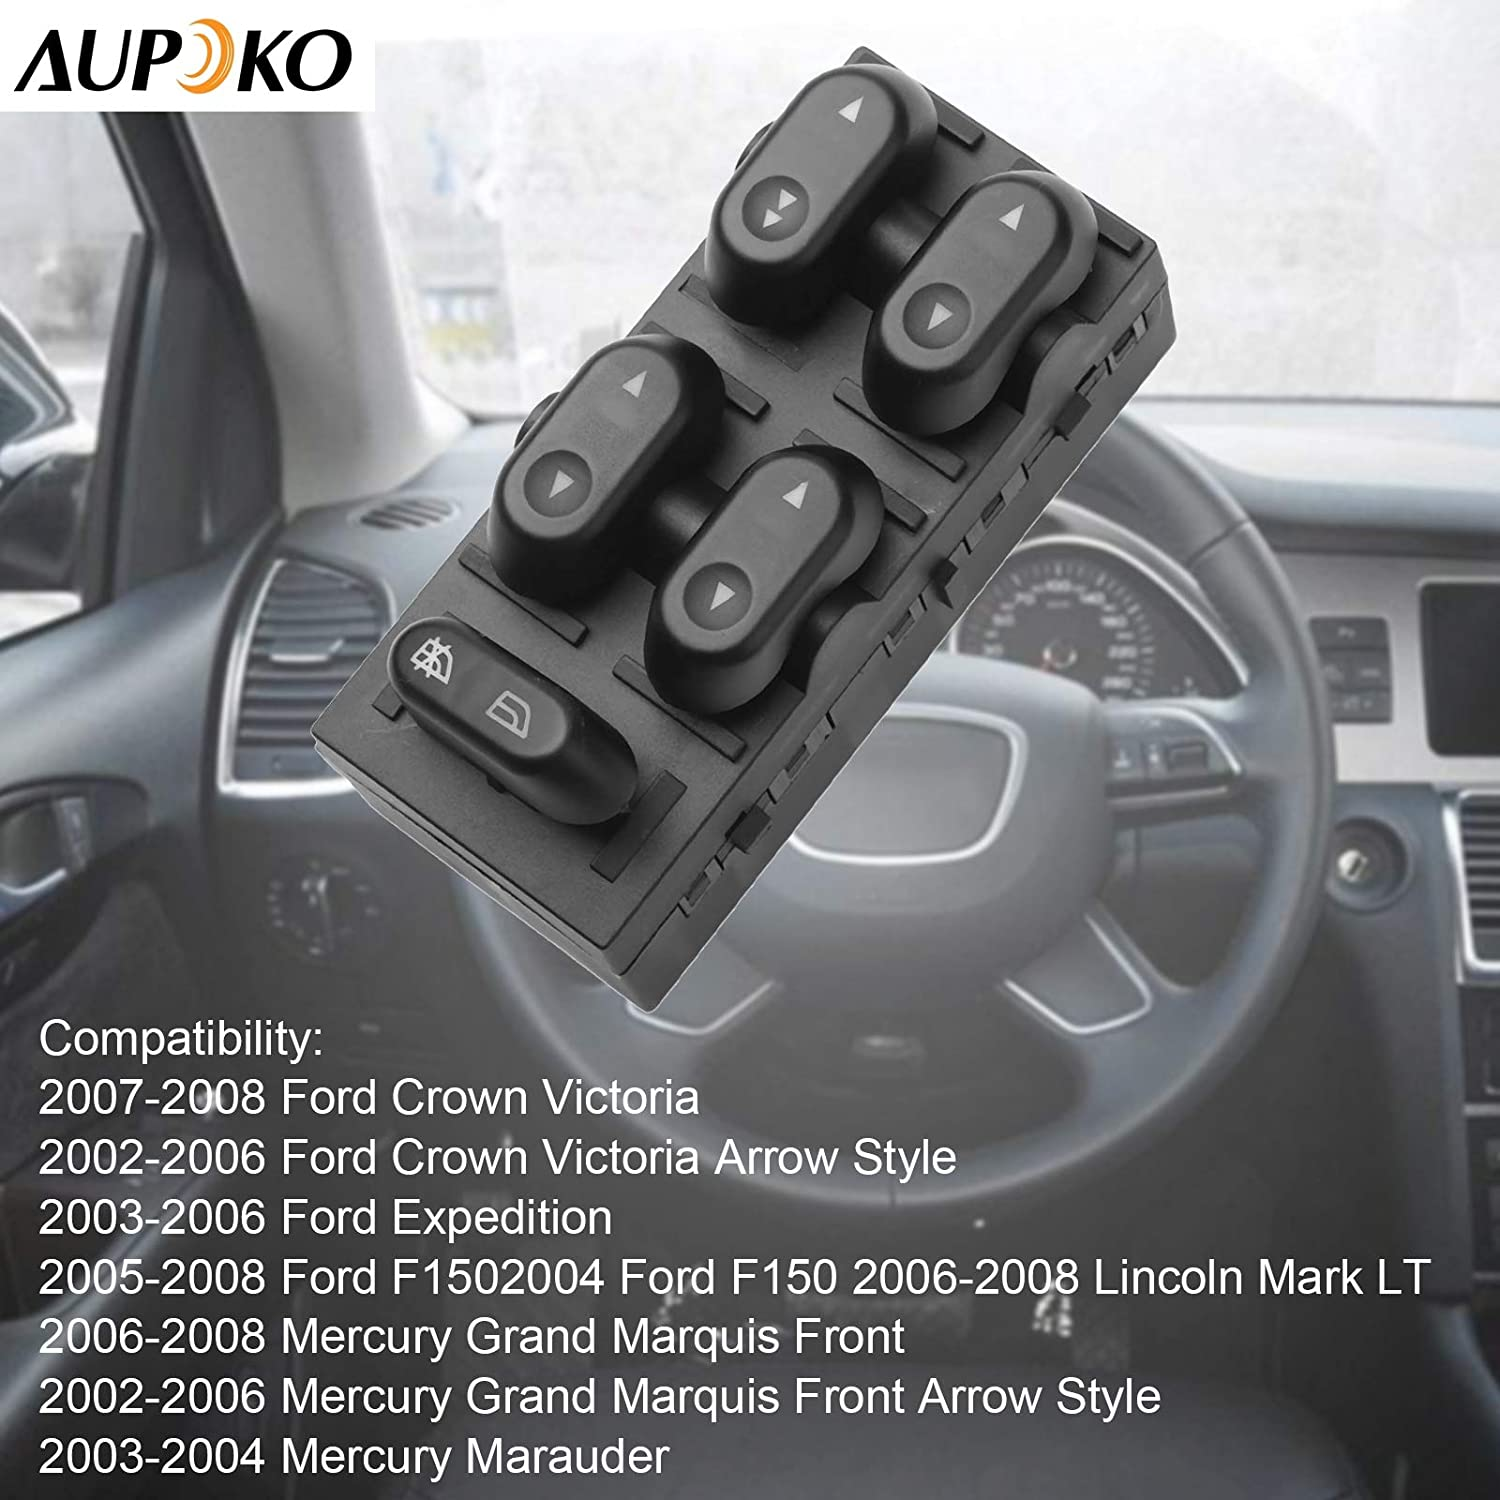 Fits for 2004-2008 Ford F-150 Aupoko Driver Side Master Power Window Switch 5L1Z14529AA 4L1Z-14529-AAA 2003-2008 Ford Crown Victoria 2003-2006 Ford Expedition Replaces# 5L1Z-14529-AA